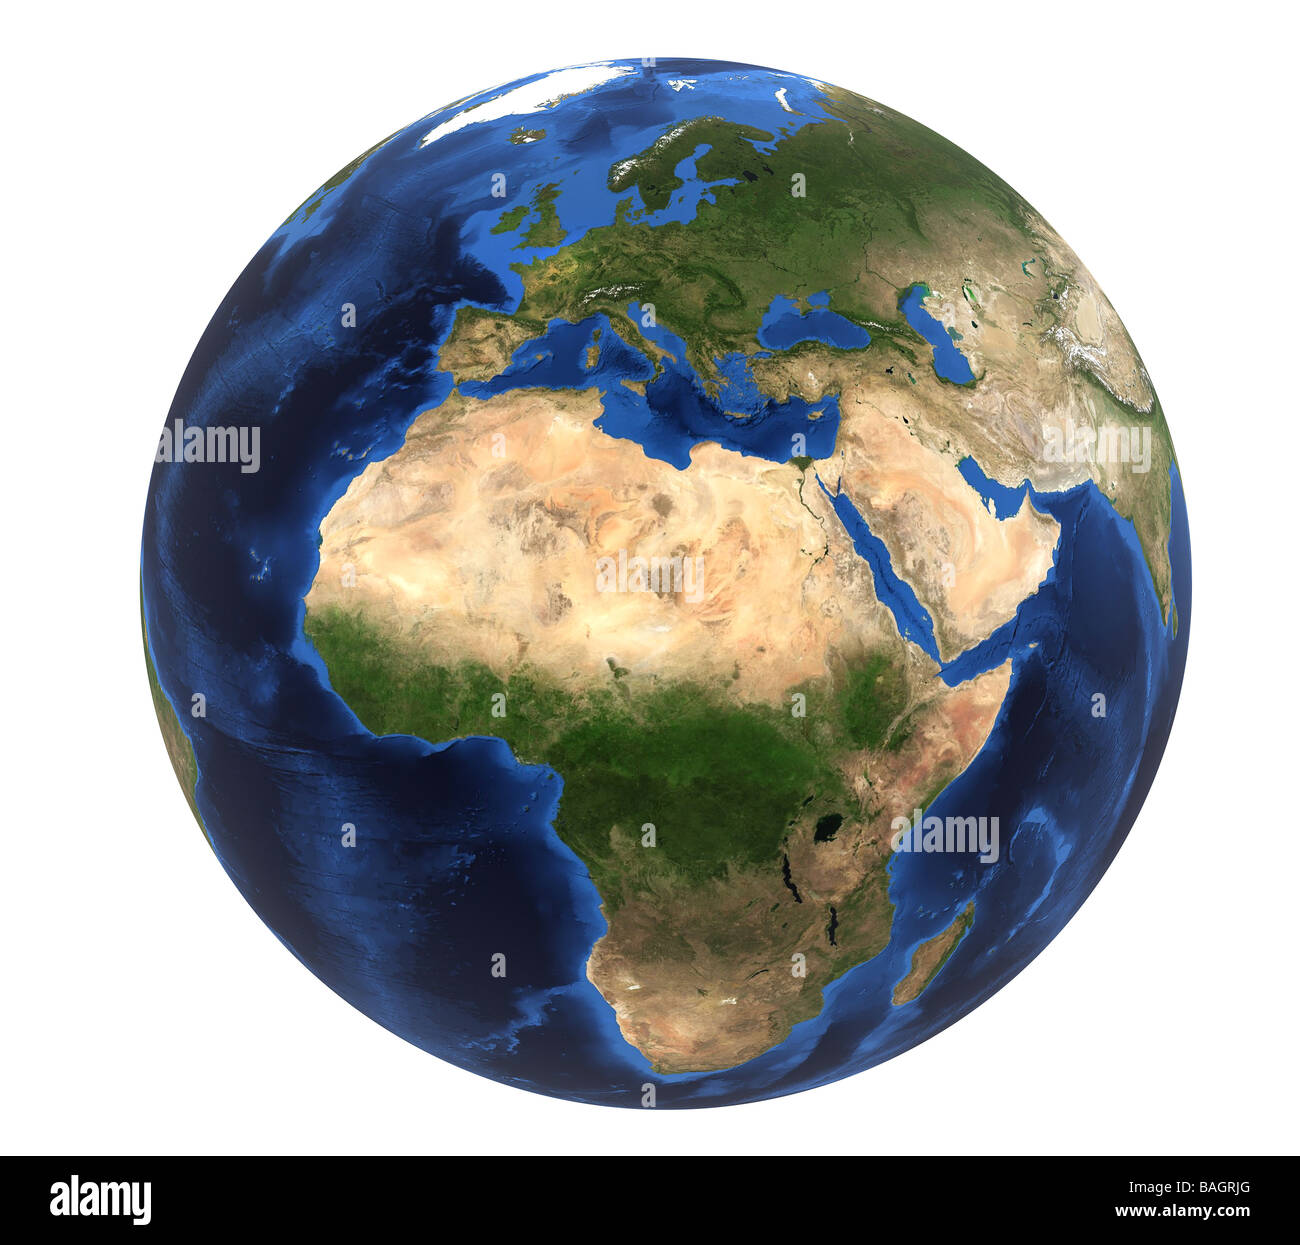 Rendered Earth image (map courtesy of NASA) showing Europe & Africa on a white background (cutout) - Stock Image